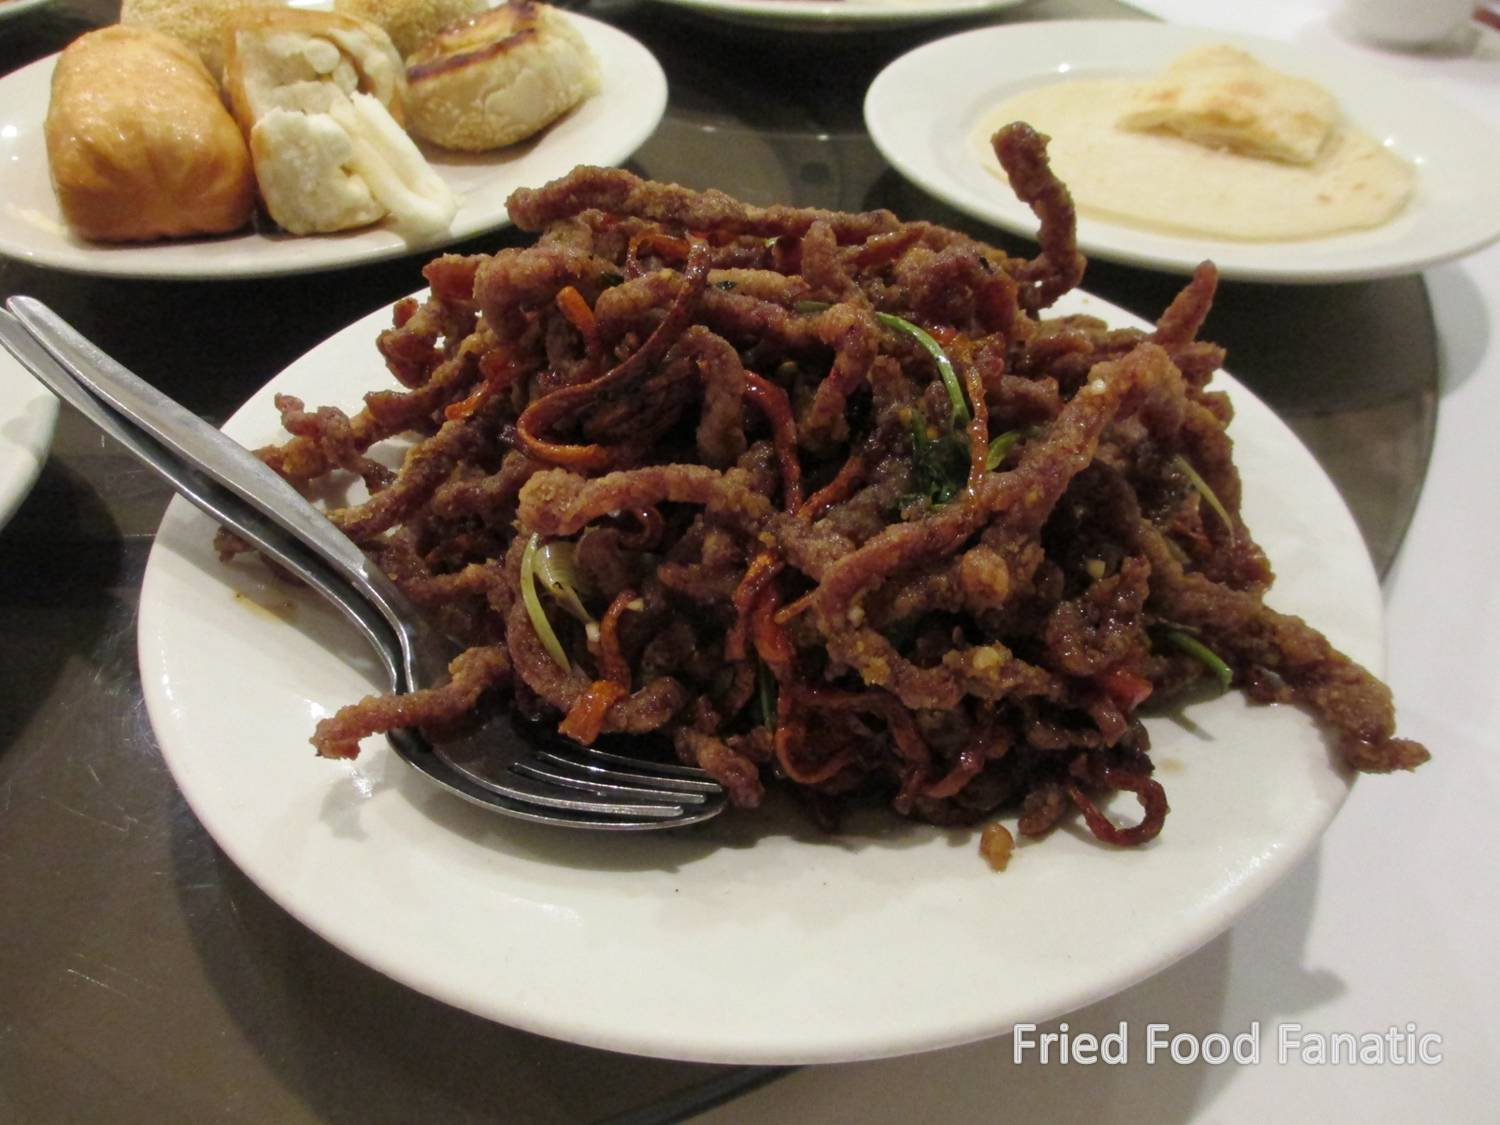 Shredded Beef Peking Style Deliciously Addictive Deep Fried Slithers Of Heavily Seasoned Beef And Carrots